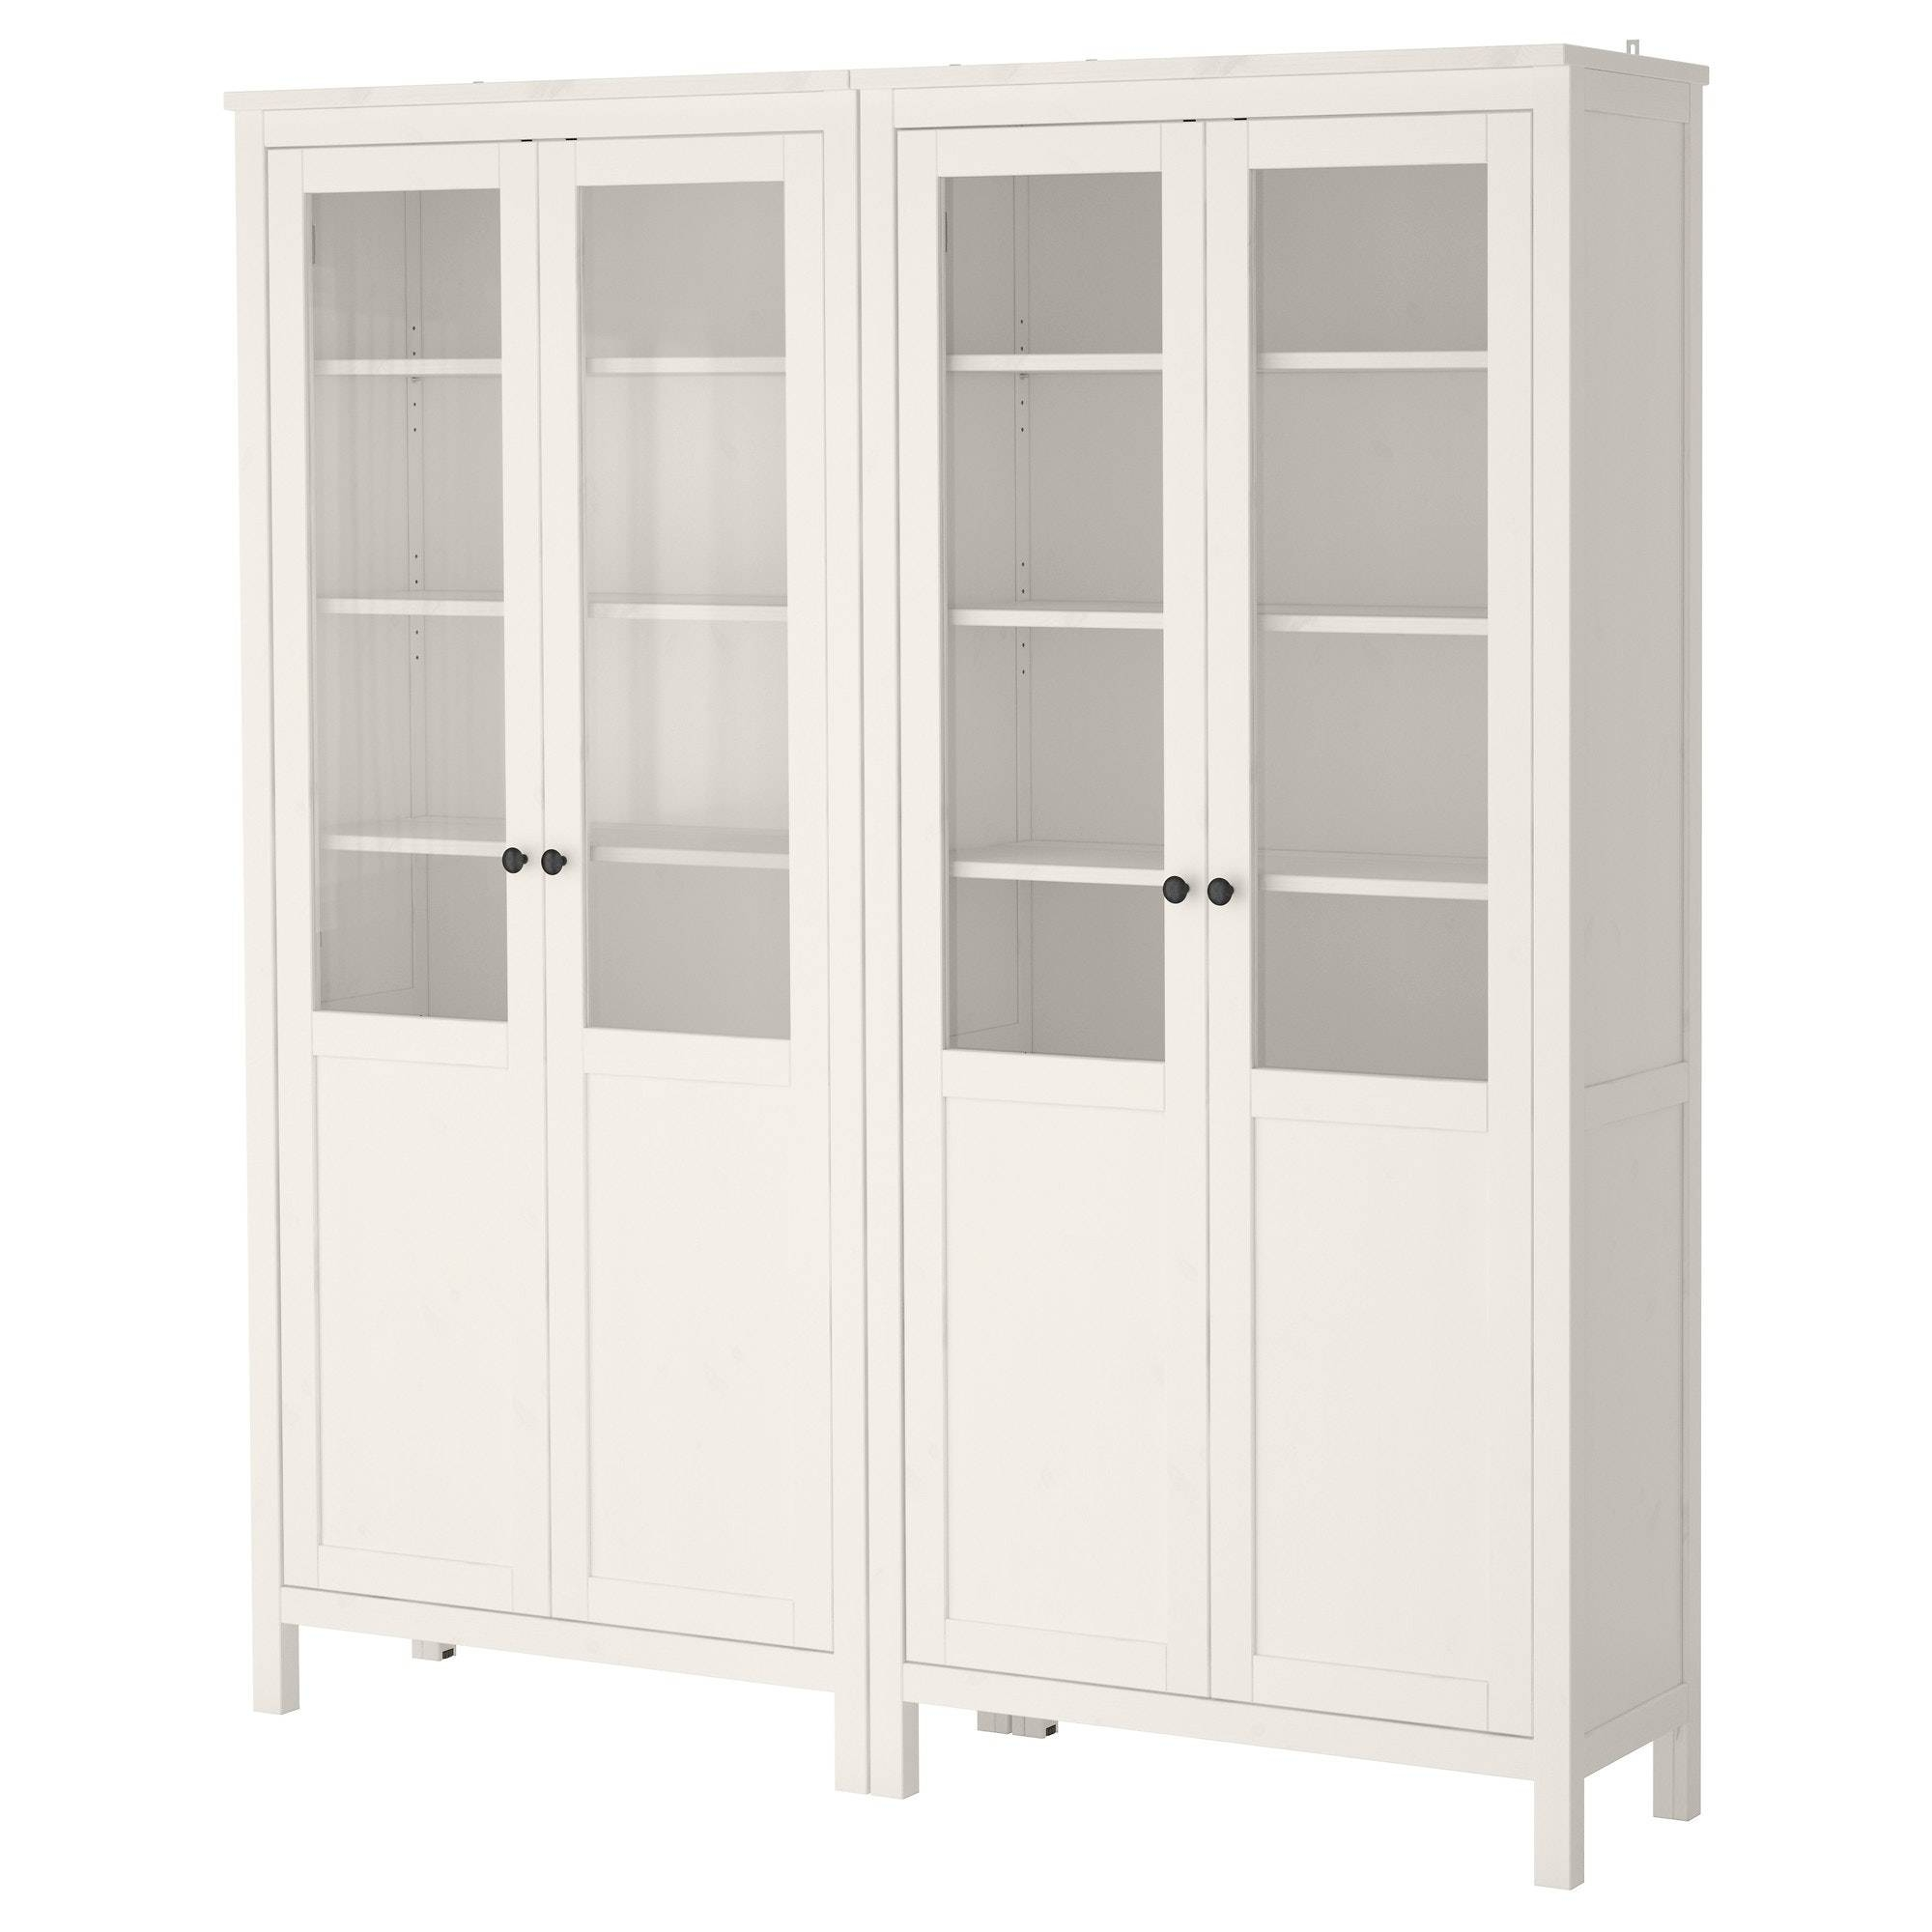 Cabinets Sideboards Ikea Photo On Outstanding Inch Deep Metal Pertaining To 12 Inch Deep Sideboards (#5 of 15)